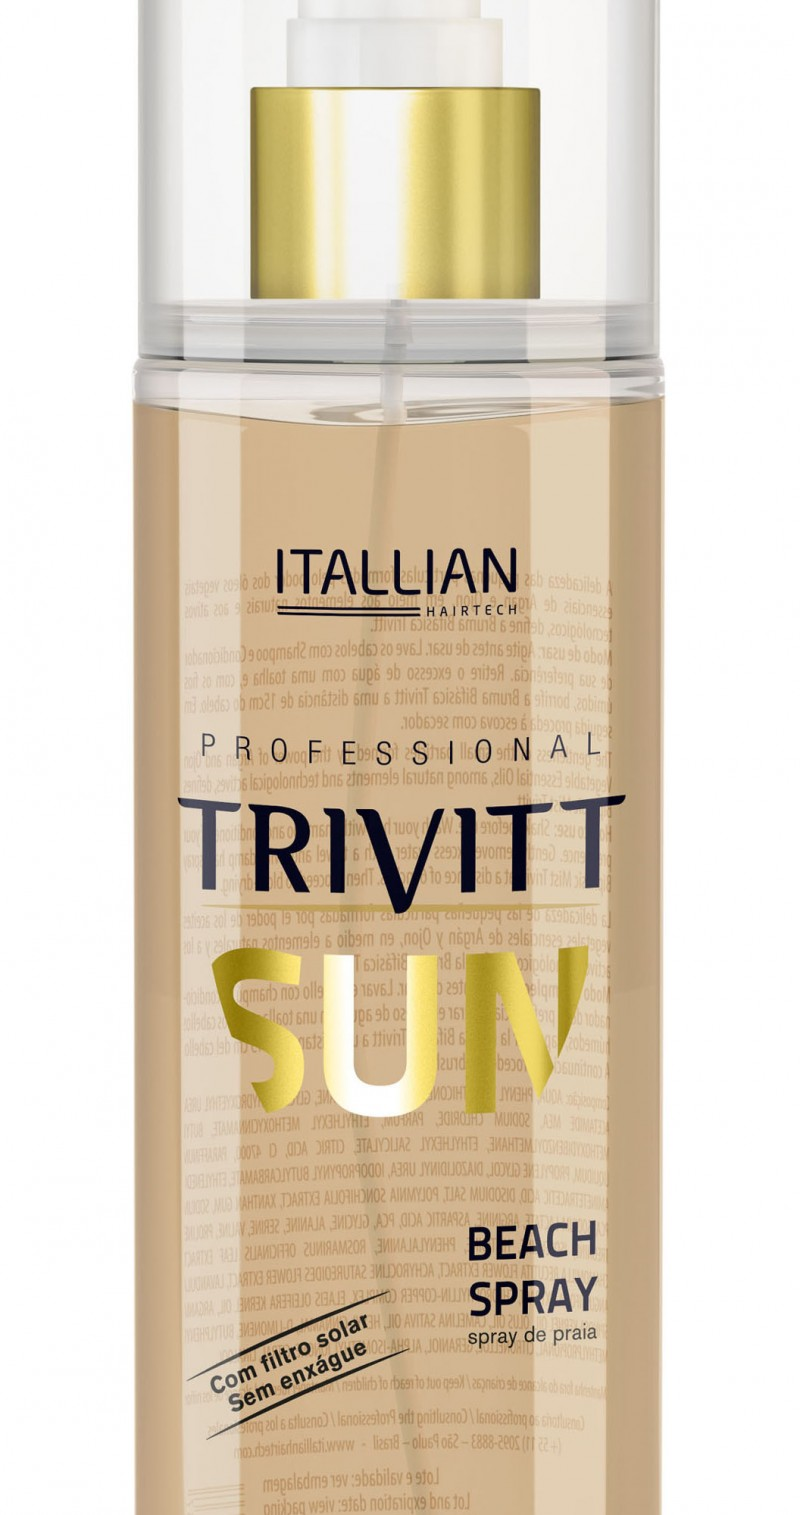 Itallian Hairtech lan�a o Beach Spray Trivitt Sun